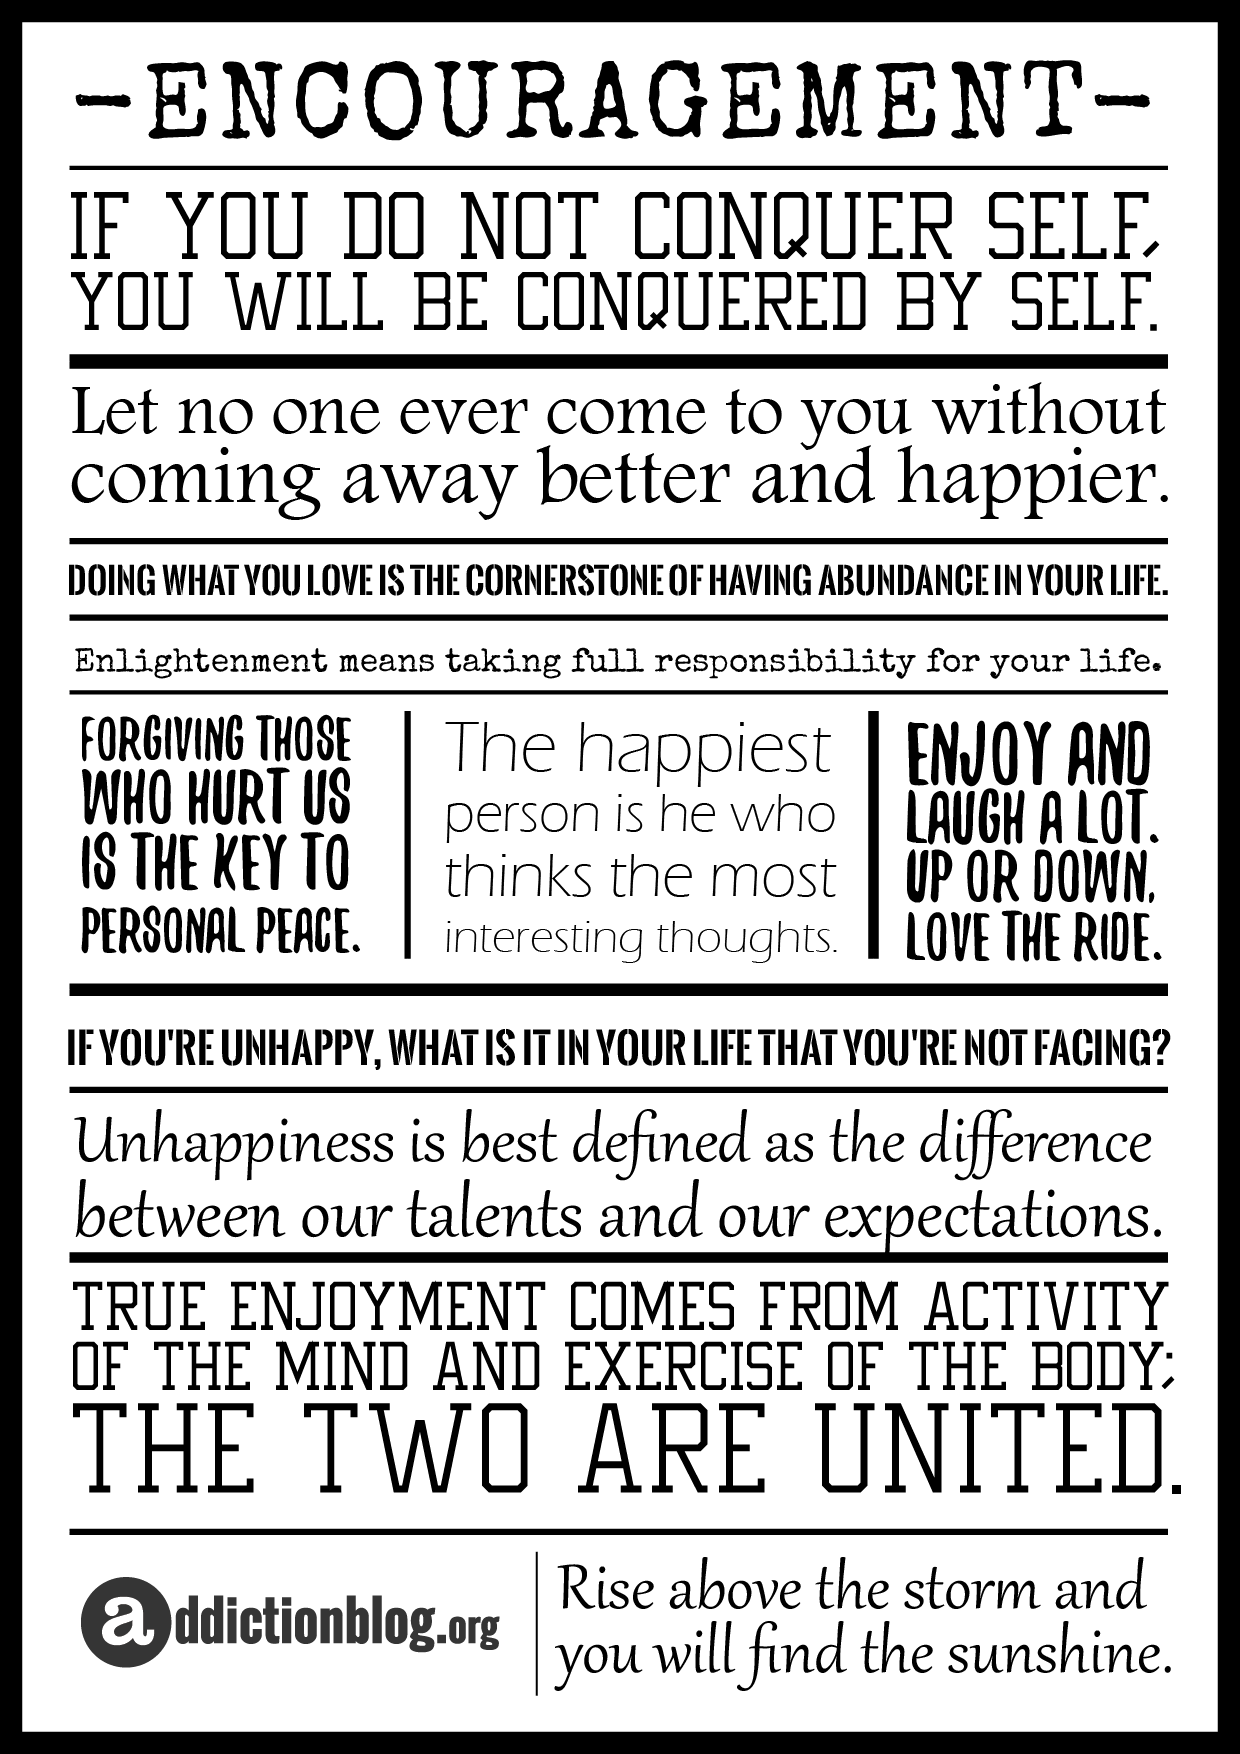 Addiction Quotes: Encouragement In Addiction Recovery [POSTER]